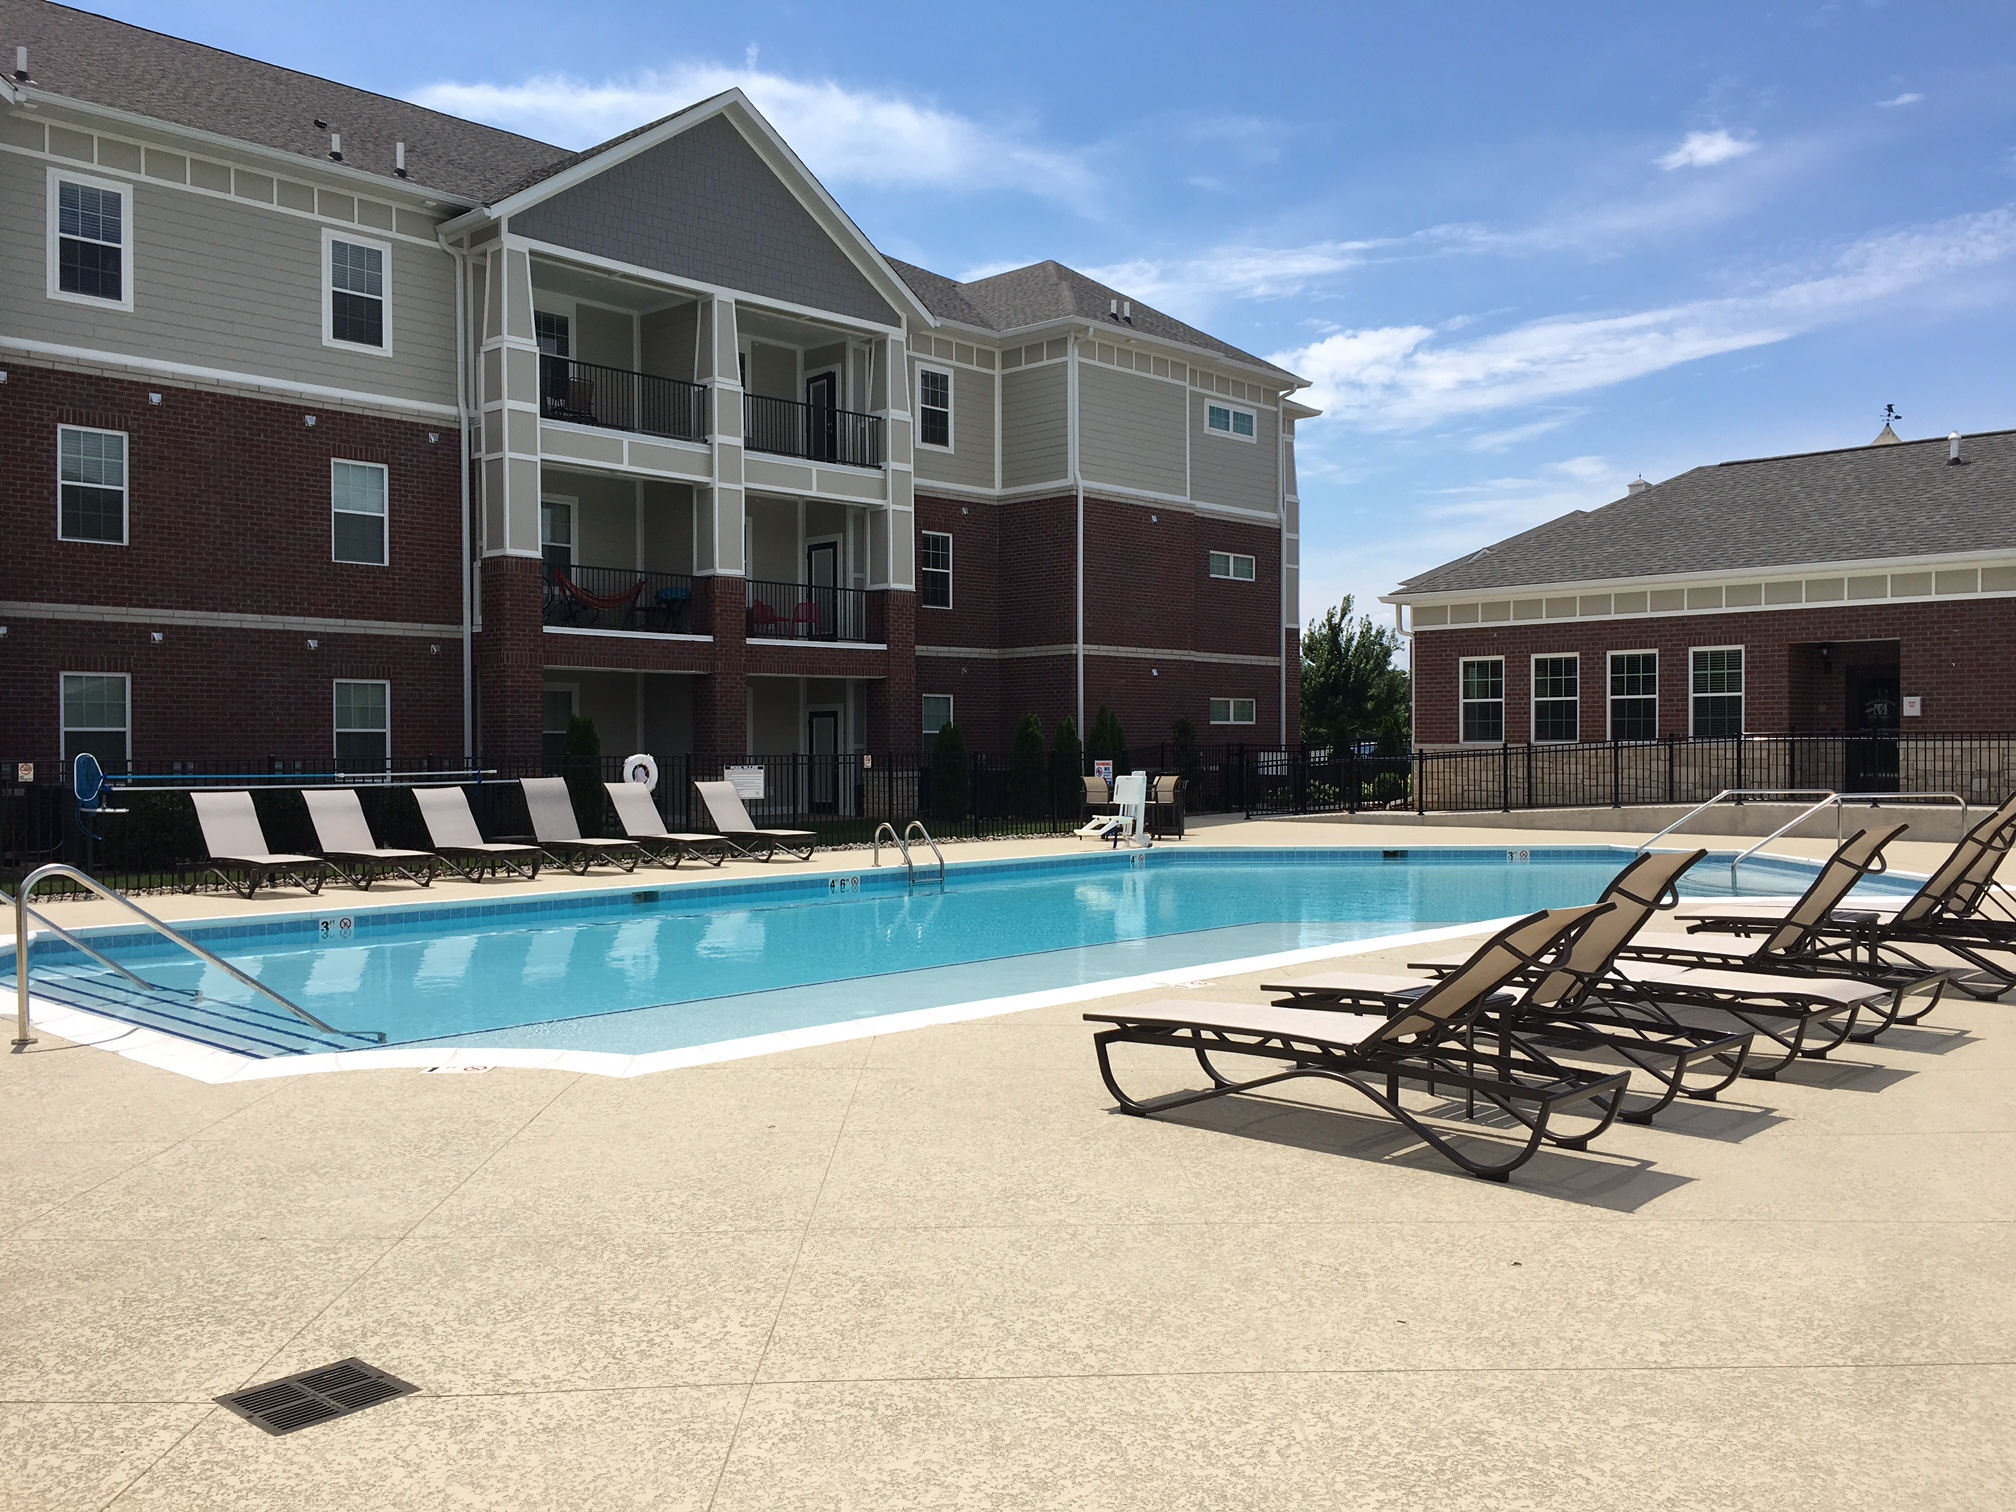 olde towne apartments photo gallery - olde towne apartments